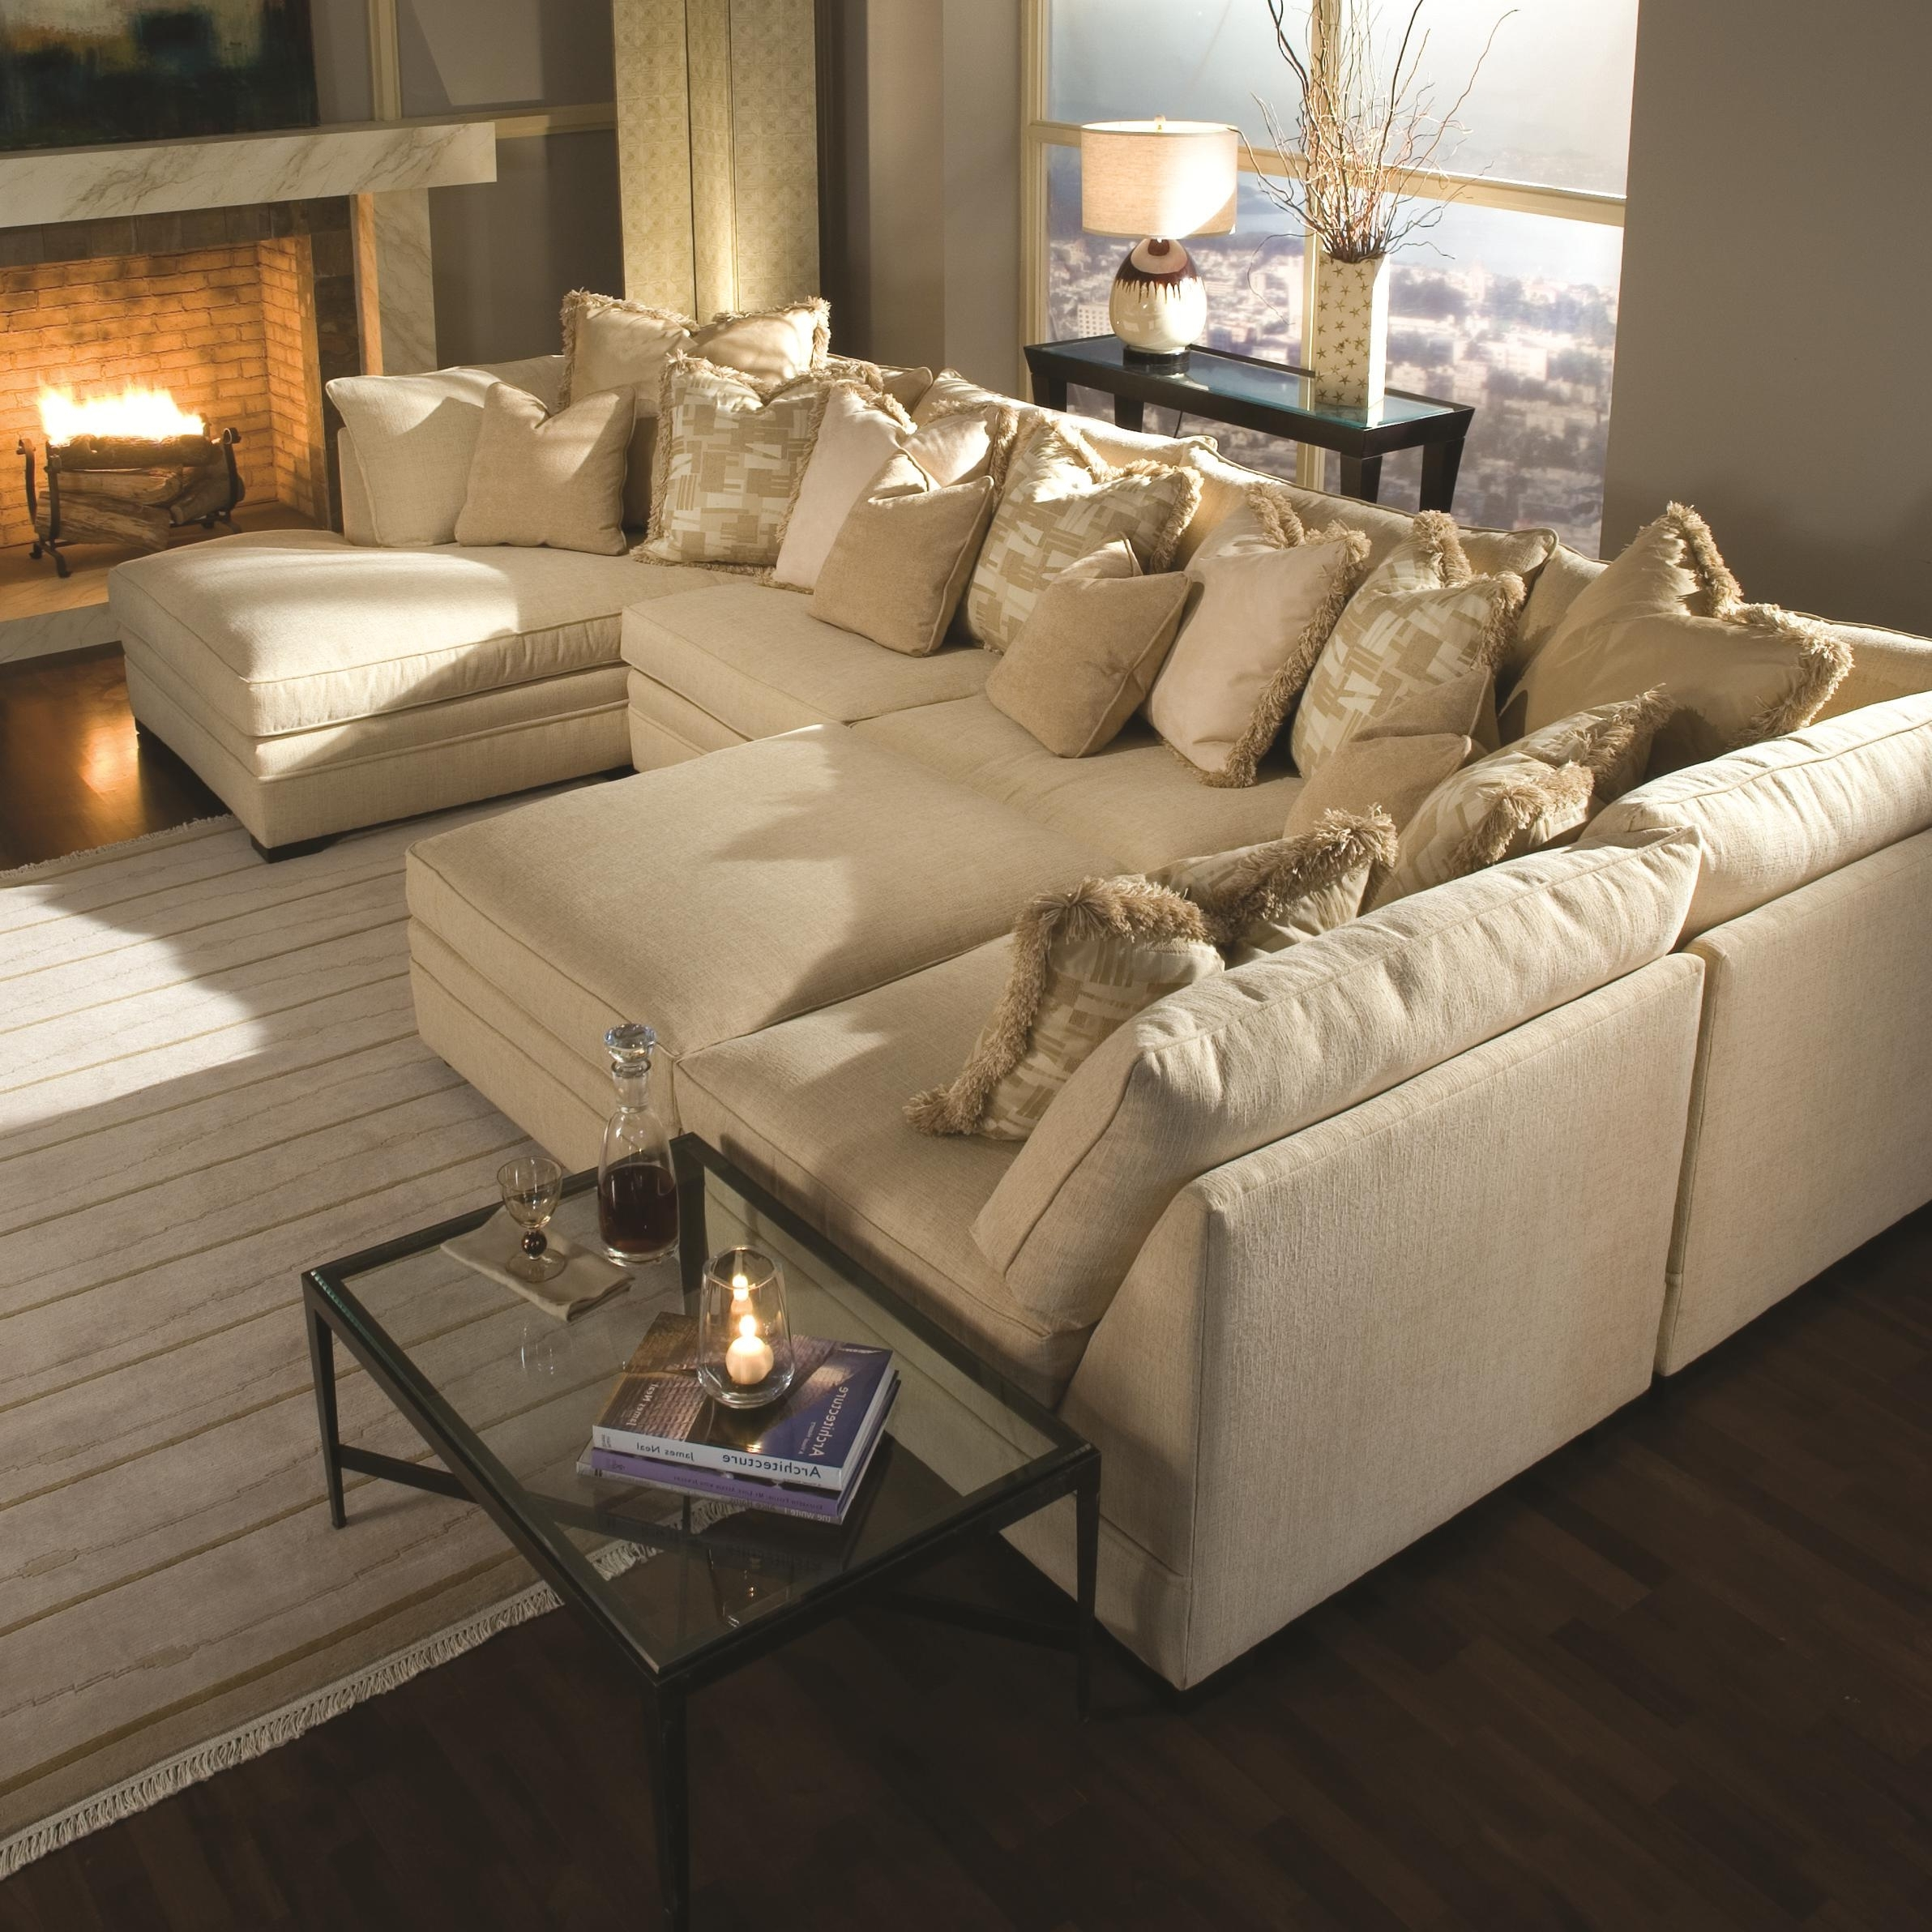 Small Sectional Sofas With Chaise And Ottoman Throughout 2019 Huntington House 7100 Contemporary U Shape Sectional Sofa With (View 12 of 20)